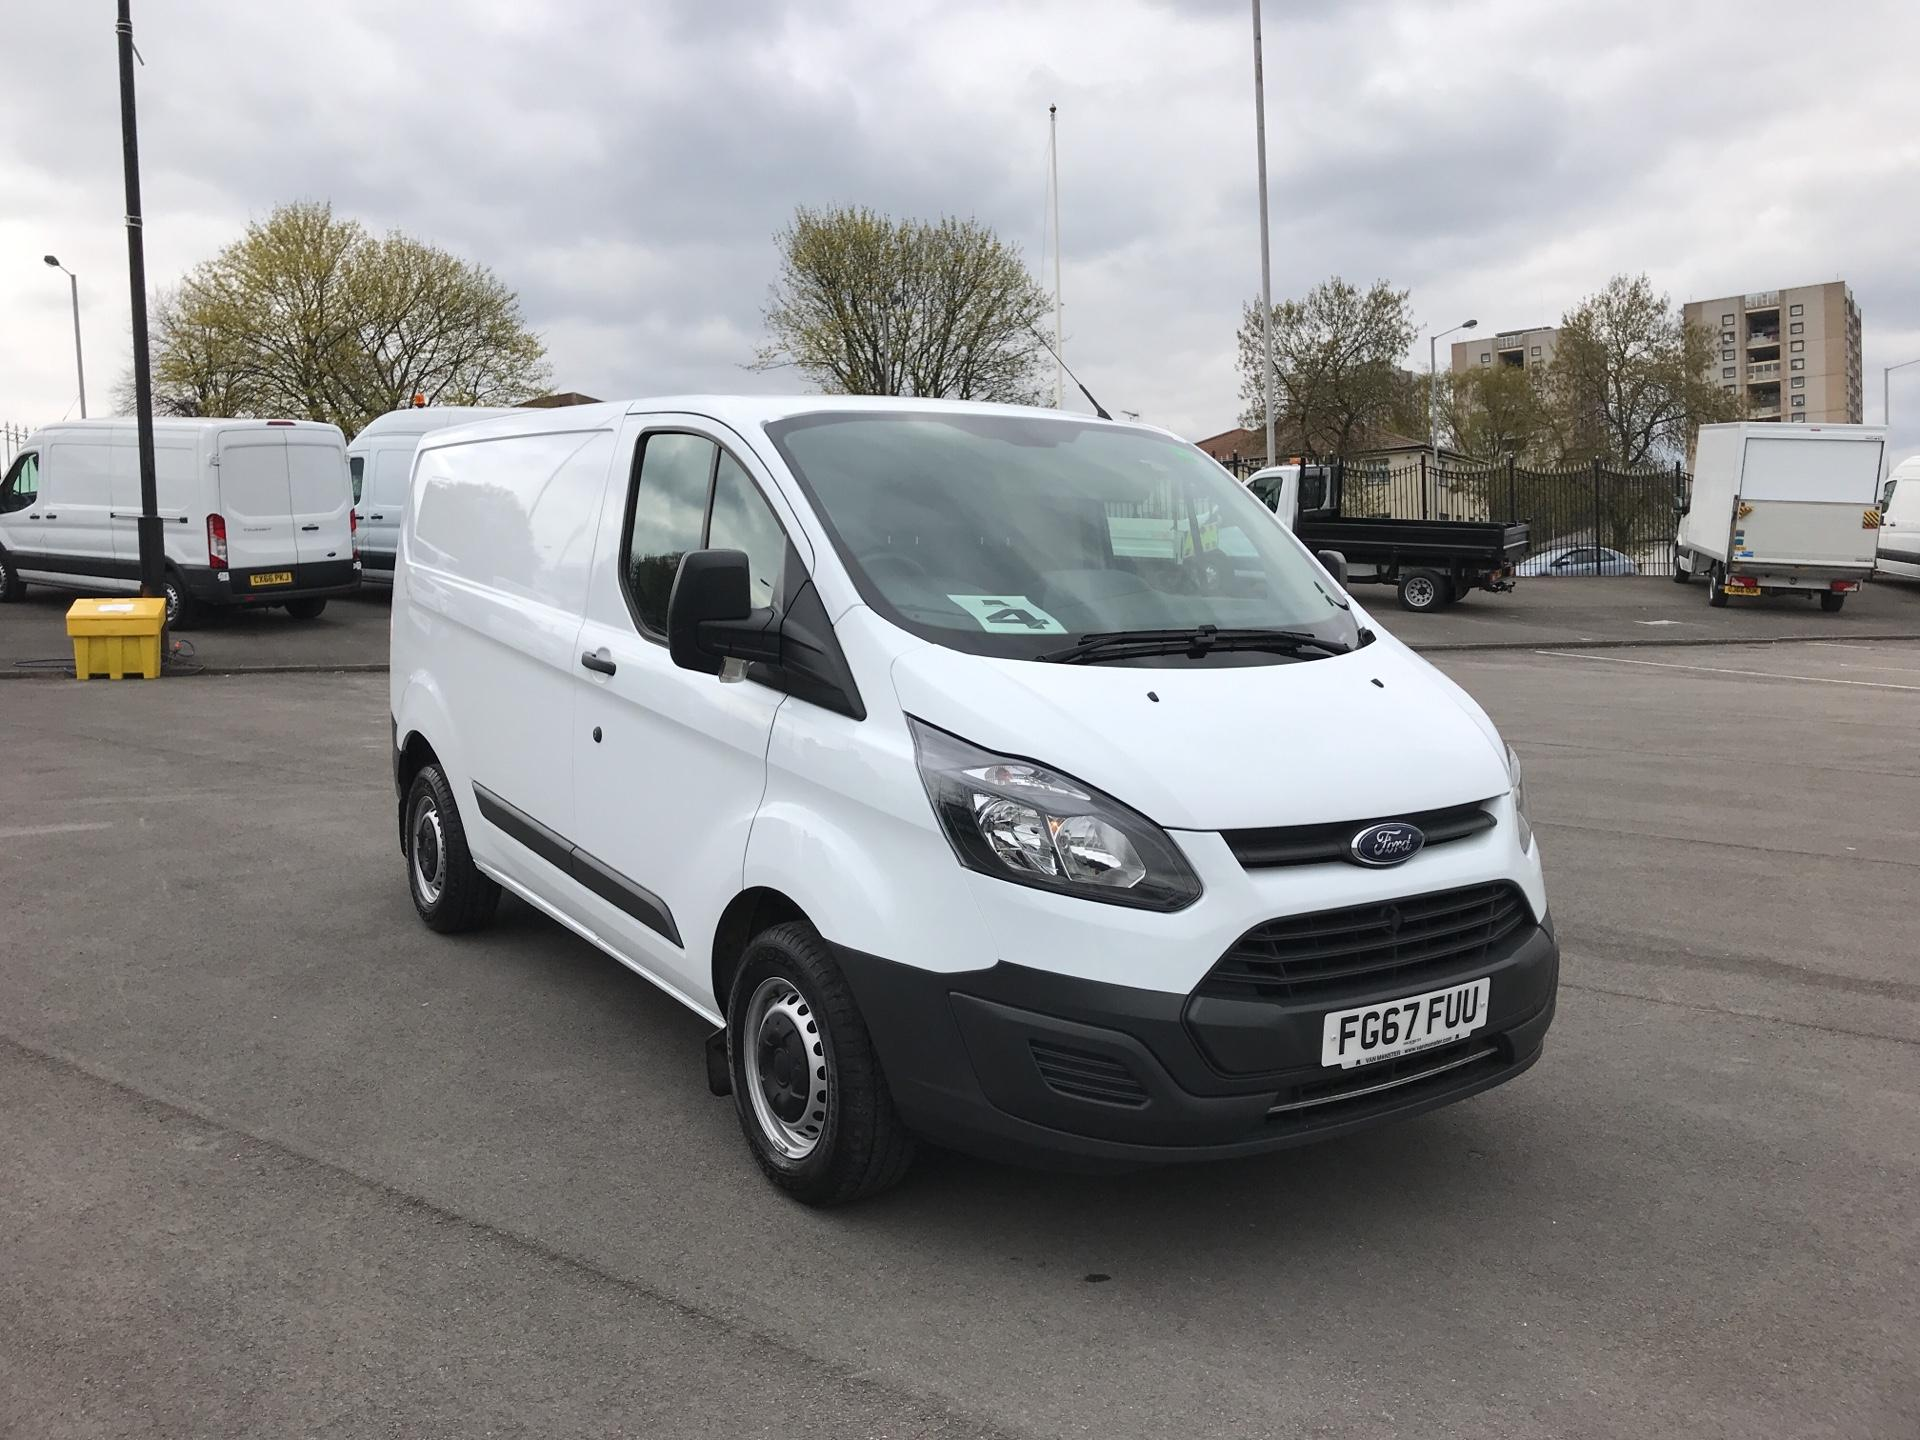 2017 Ford Transit Custom 2.0 Tdci 105Ps Low Roof Van (FG67FUU)